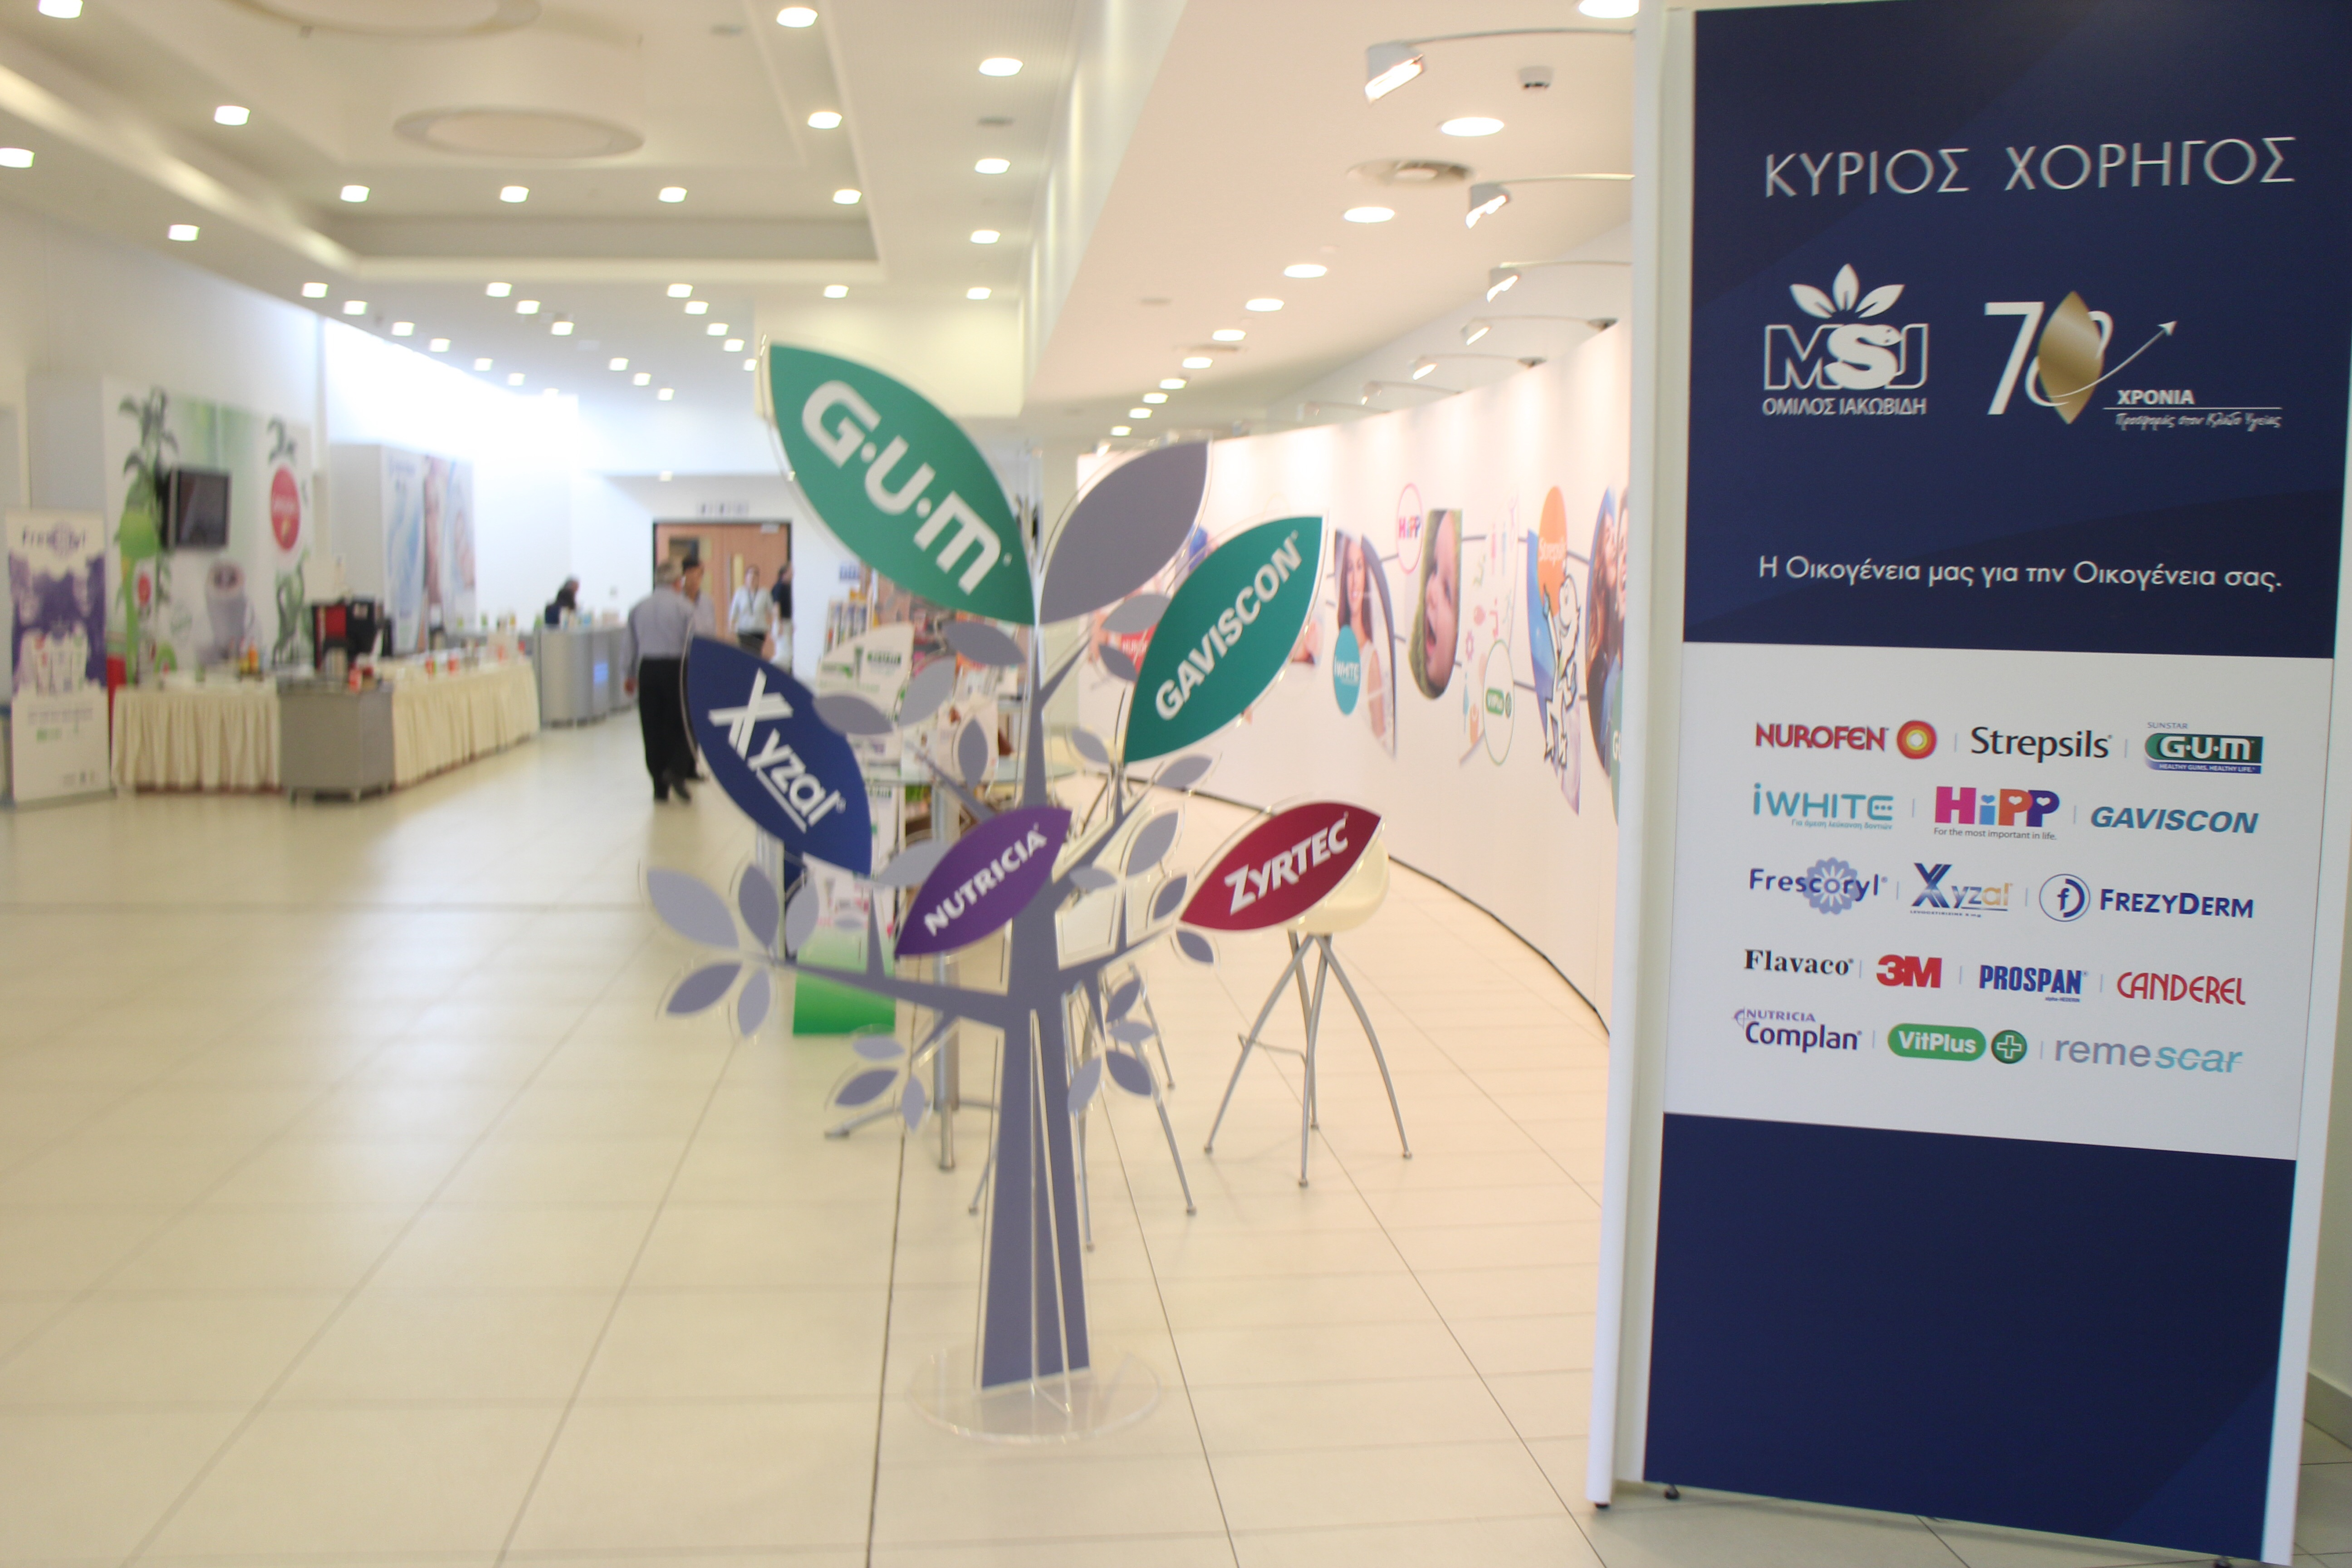 MSJ – Jacovides Group has been very proud to be the major sponsor of the 7th Pharmaceutical Congress in Cyprus